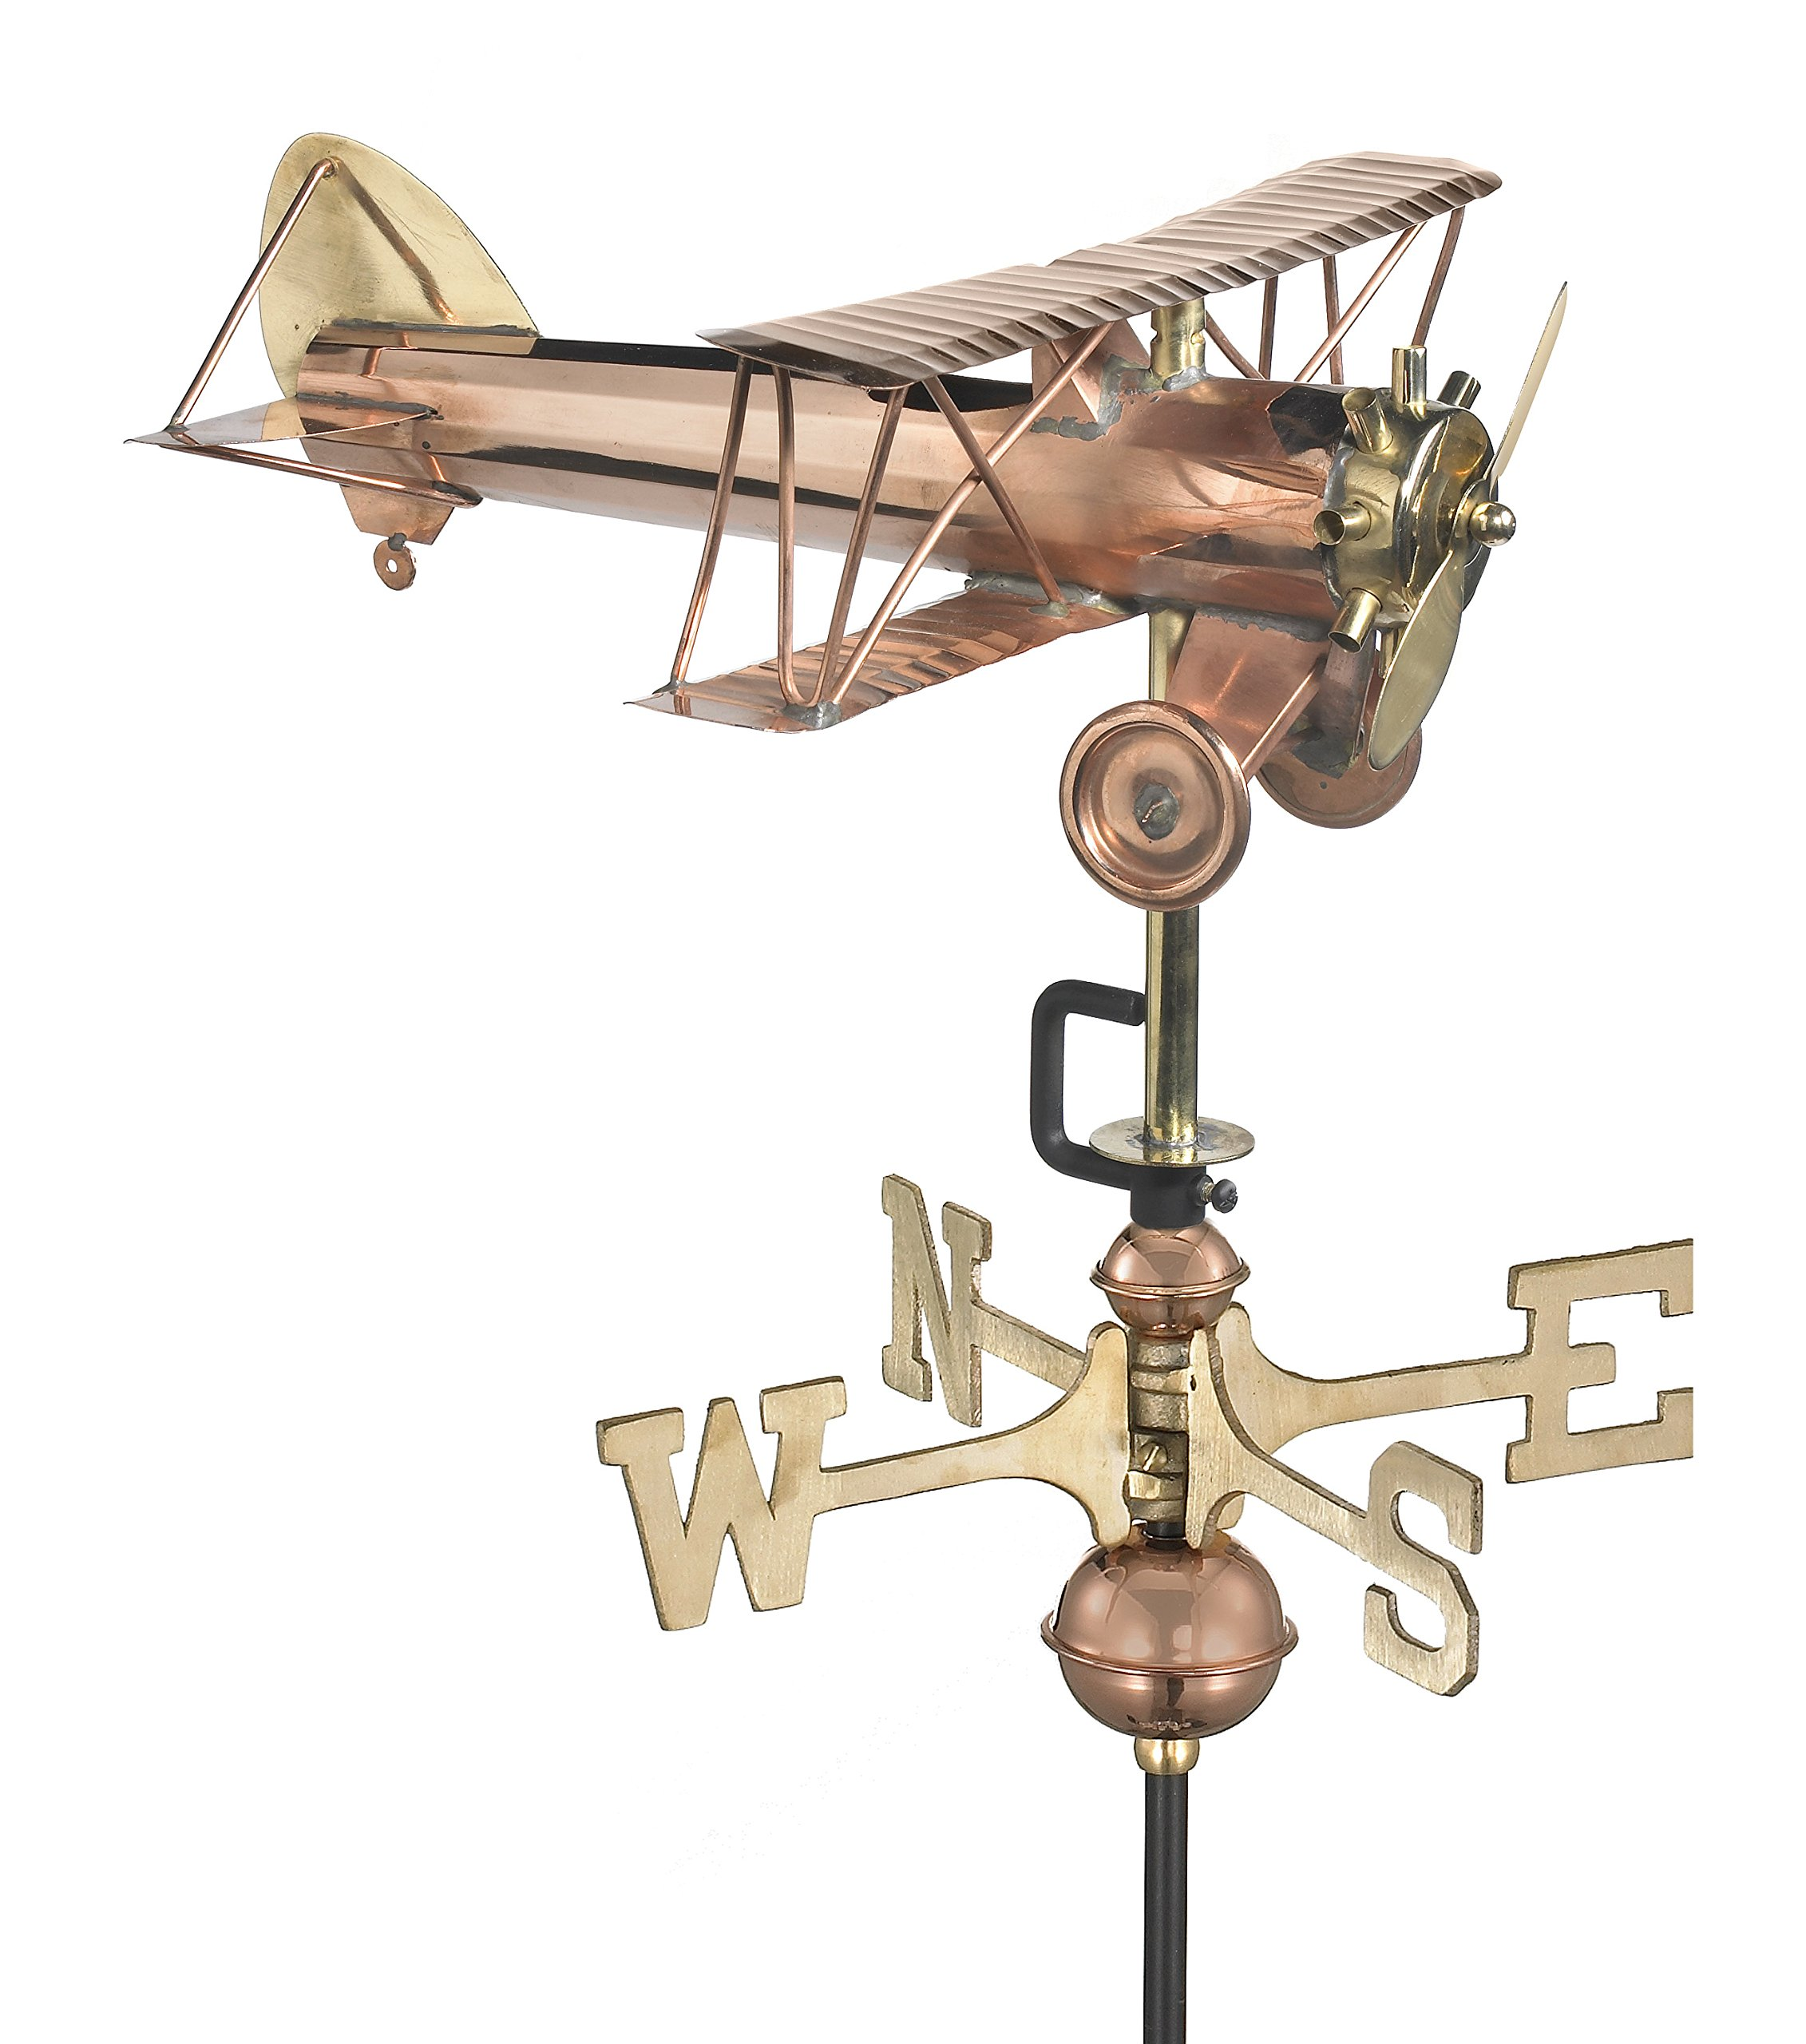 Good Directions Biplane Weathervane with Garden Pole, Pure Copper, Airplane Weathervanes, Aviation Décor by Good Directions